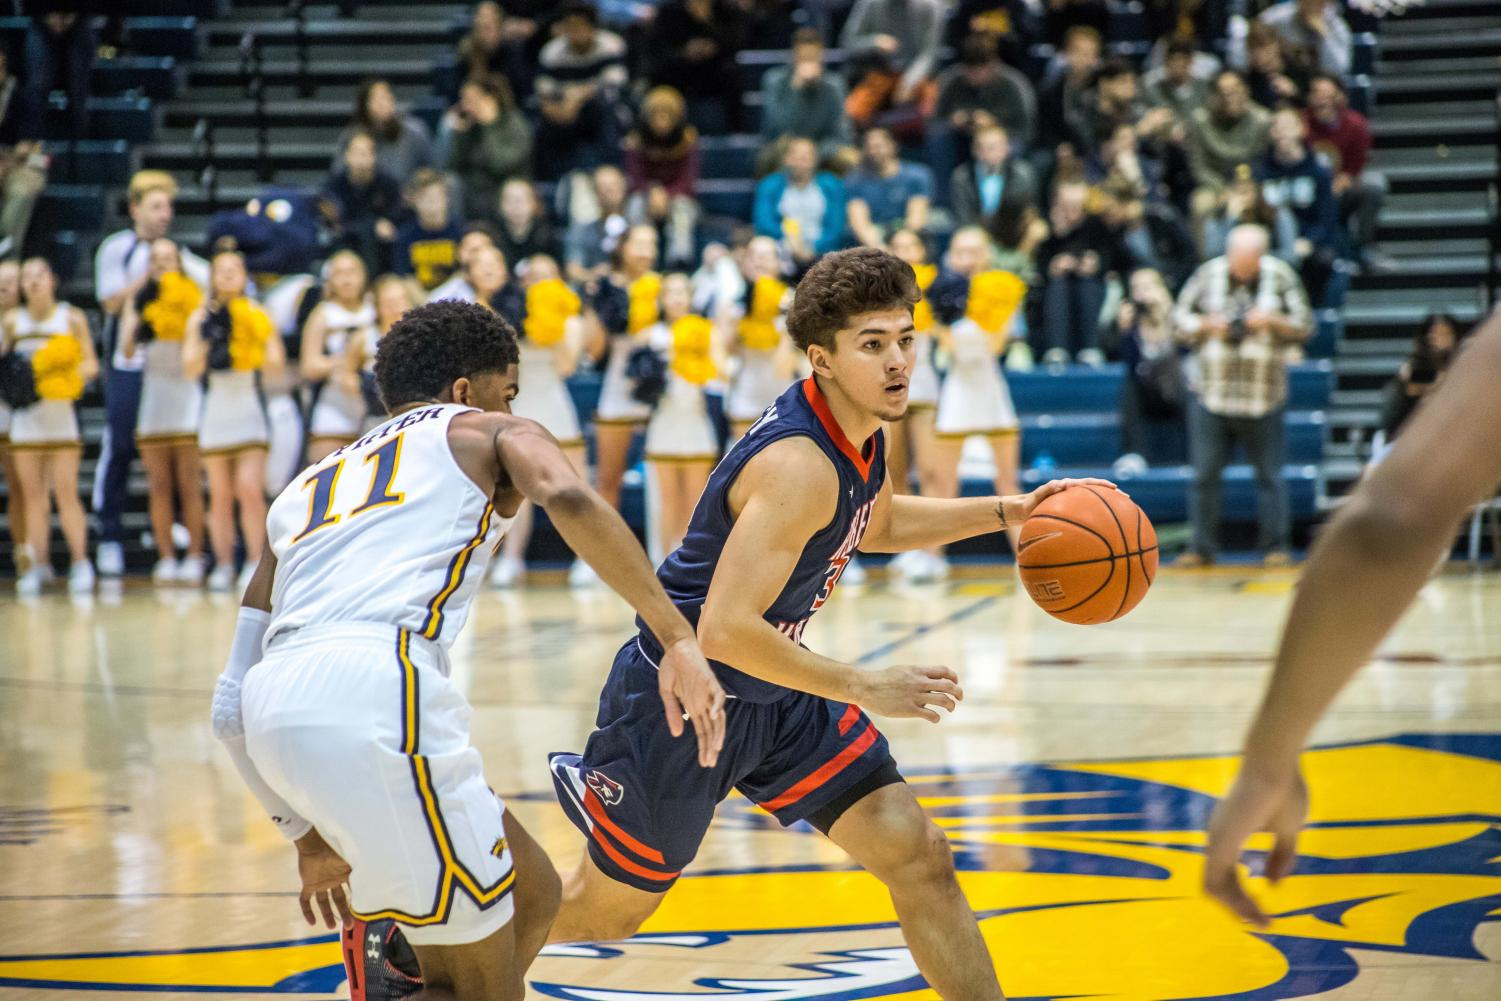 Dante Treacy surveys the Drexel defense in the Colonials 82-69 loss to the Dragons.